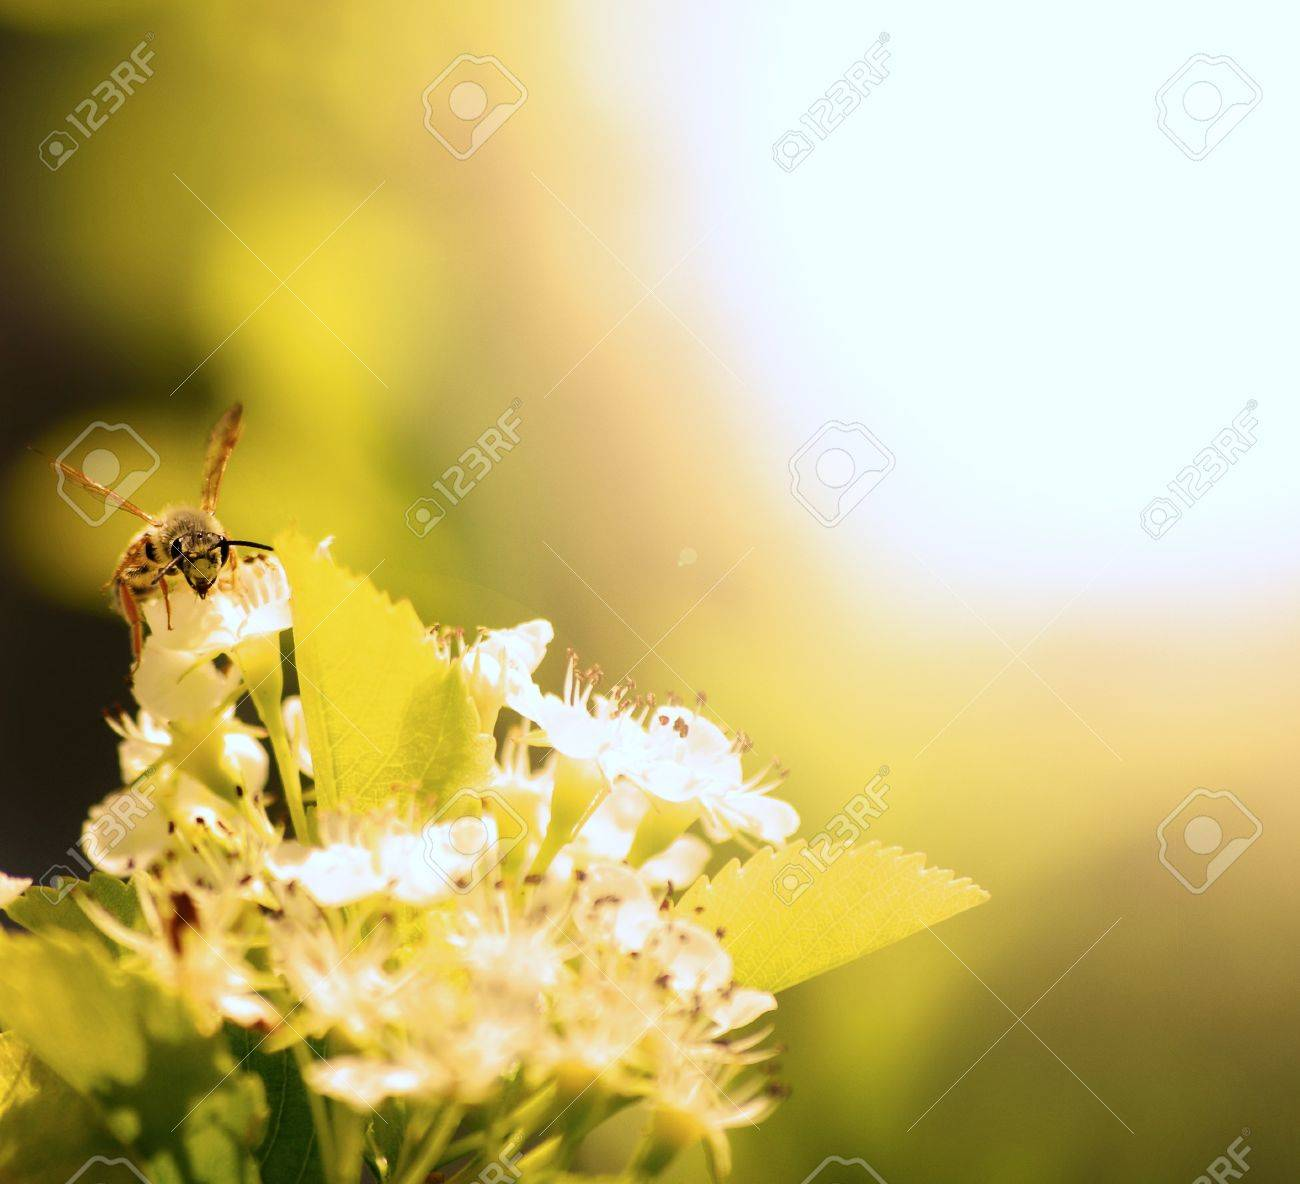 A single Bee Resting on a Flower Petal Stock Photo - 9548299